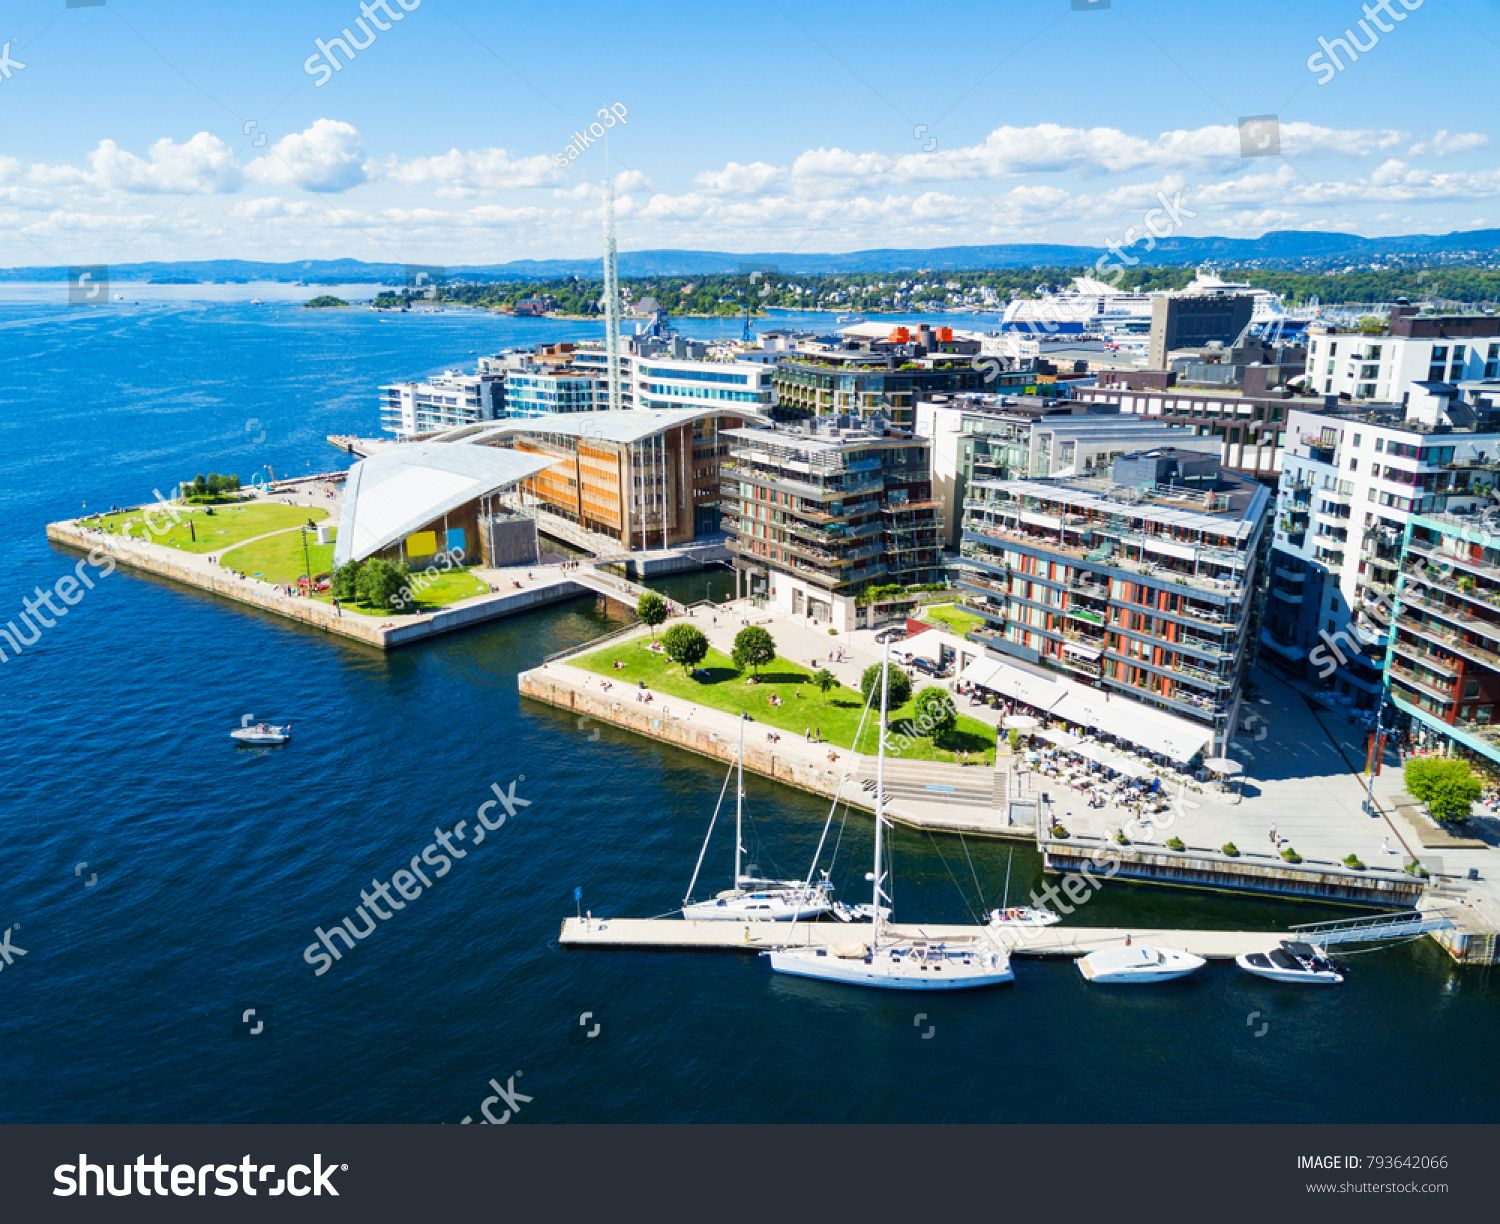 Oslo Harbor Or Harbour At The Aker Brygge Neighbourhood In Oslo Oslo Is The Capital Of Norway Harbour Countries Of The World Beautiful Wallpapers Norway Tours